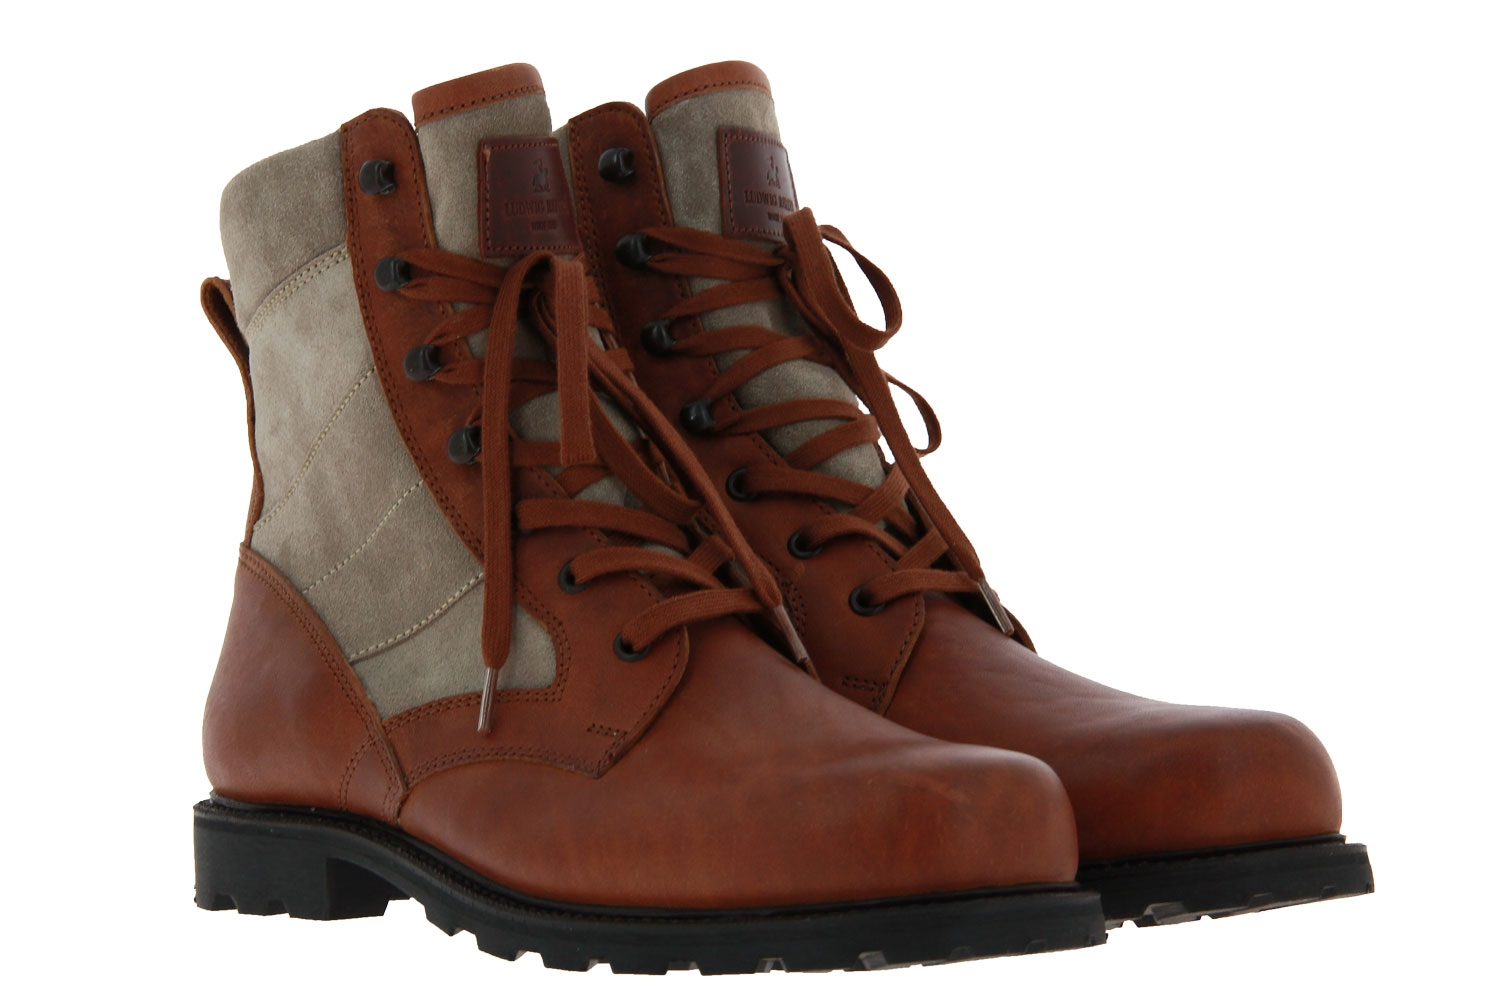 Ludwig Reiter ankle boots lined DESERT HORSEBACK MIDBROWN